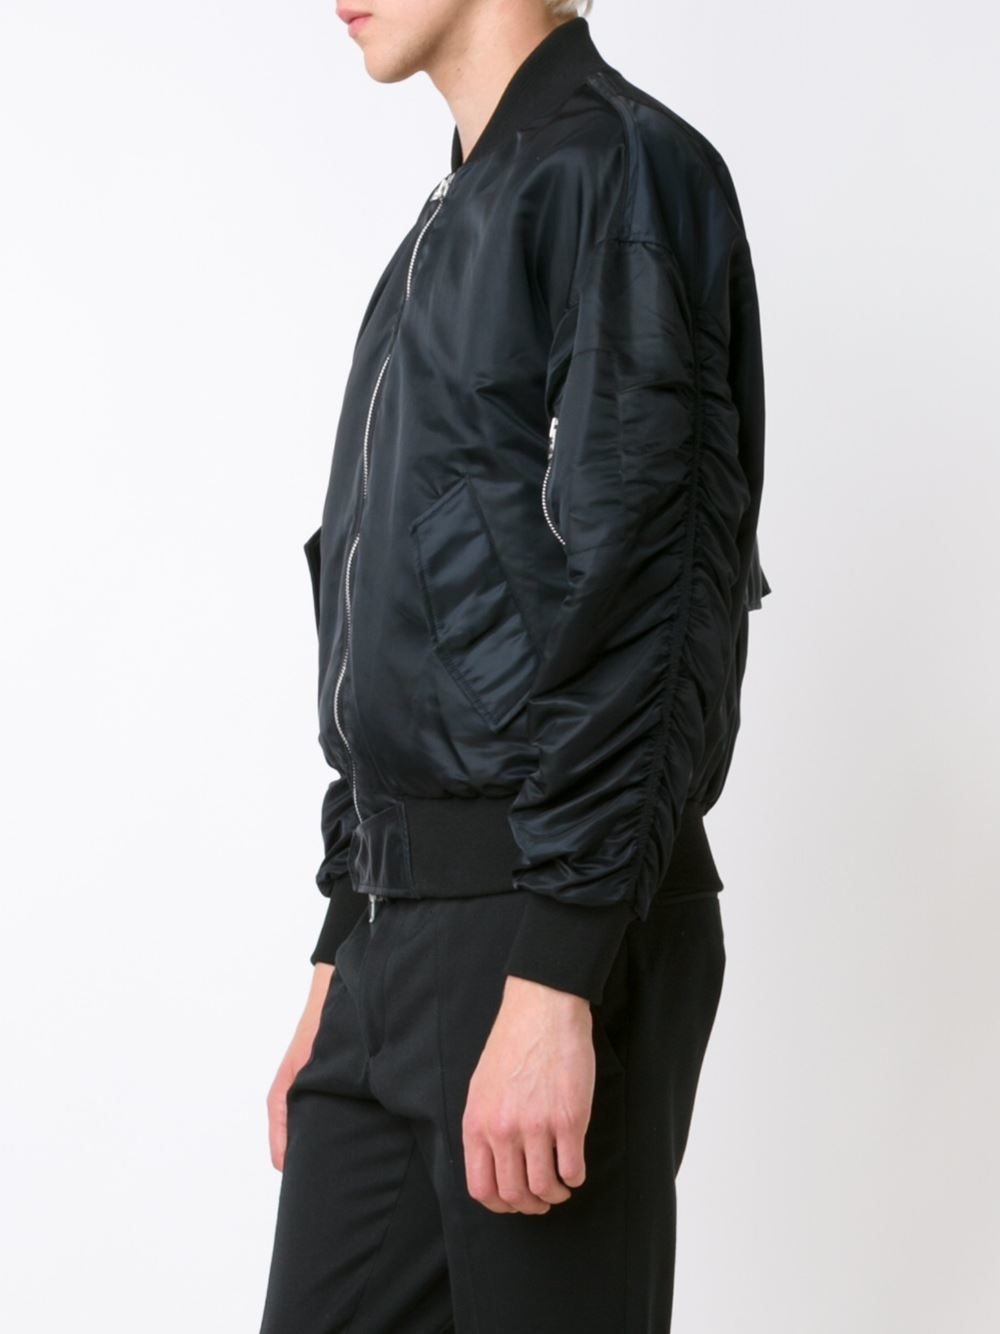 Fear Of God Silk The Fourth Collection Satin Bomber Jacket in Black for Men